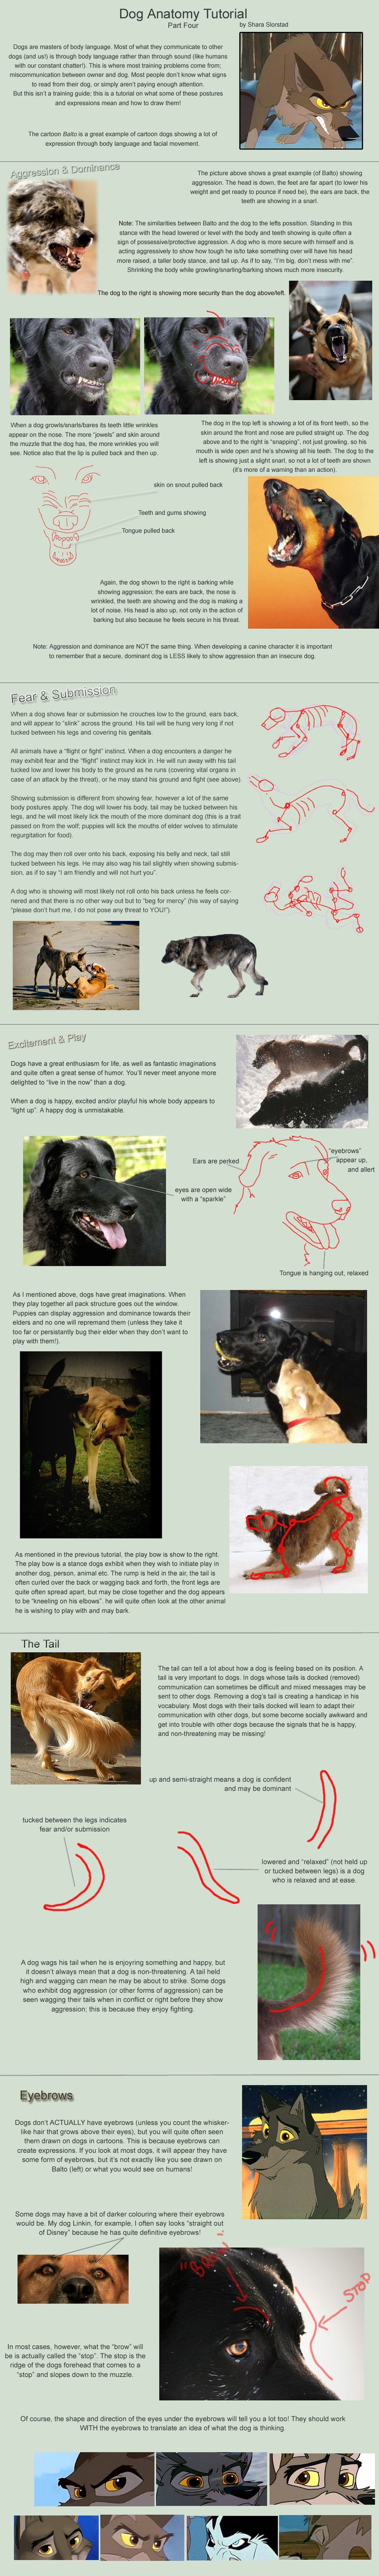 Dog Anatomy Tutorial 4 by SleepingDeadGirl.deviantart.com on @deviantART